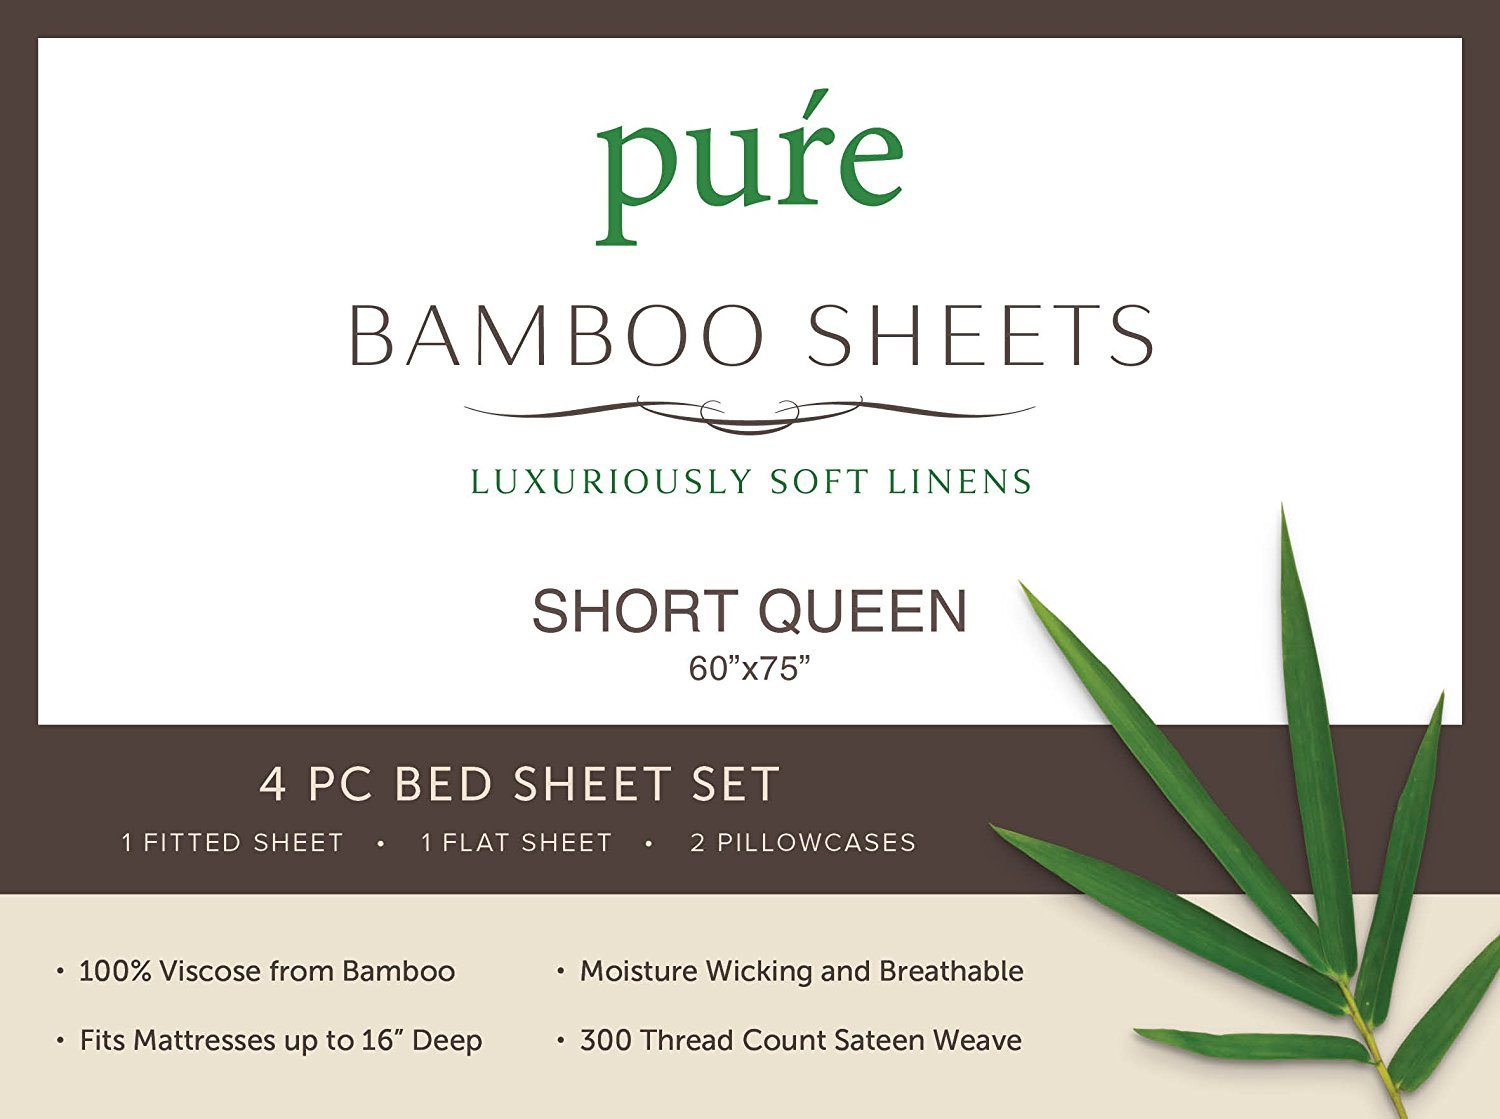 "Pure Bamboo Sheets Short Queen Sheets for RV or Camper (60""x75"") - 100% Bamboo Luxuriously Soft Bed Sheets (Sand) - ✔️ MADE FROM THE HIGHEST QUALITY ORGANIC PURE BAMBOO - Never blended with others fabrics or fibers ✔️ SHORT QUEEN 60""X75"" BEDDING SET INCLUDES: 1 fitted sheet, 1 flat sheet and 2 queen size envelope-style pillowcases -All with double-stitched seams ✔️ DEEP POCKETS FIT UP TO 16"" MATTRESS - Fitted sheet has deep pockets, a fully elasticized bottom and box fit stitching, ensuring a perfect snug fit that stays neatly in place - sheet-sets, bedroom-sheets-comforters, bedroom - 71A0z3iymhL -"